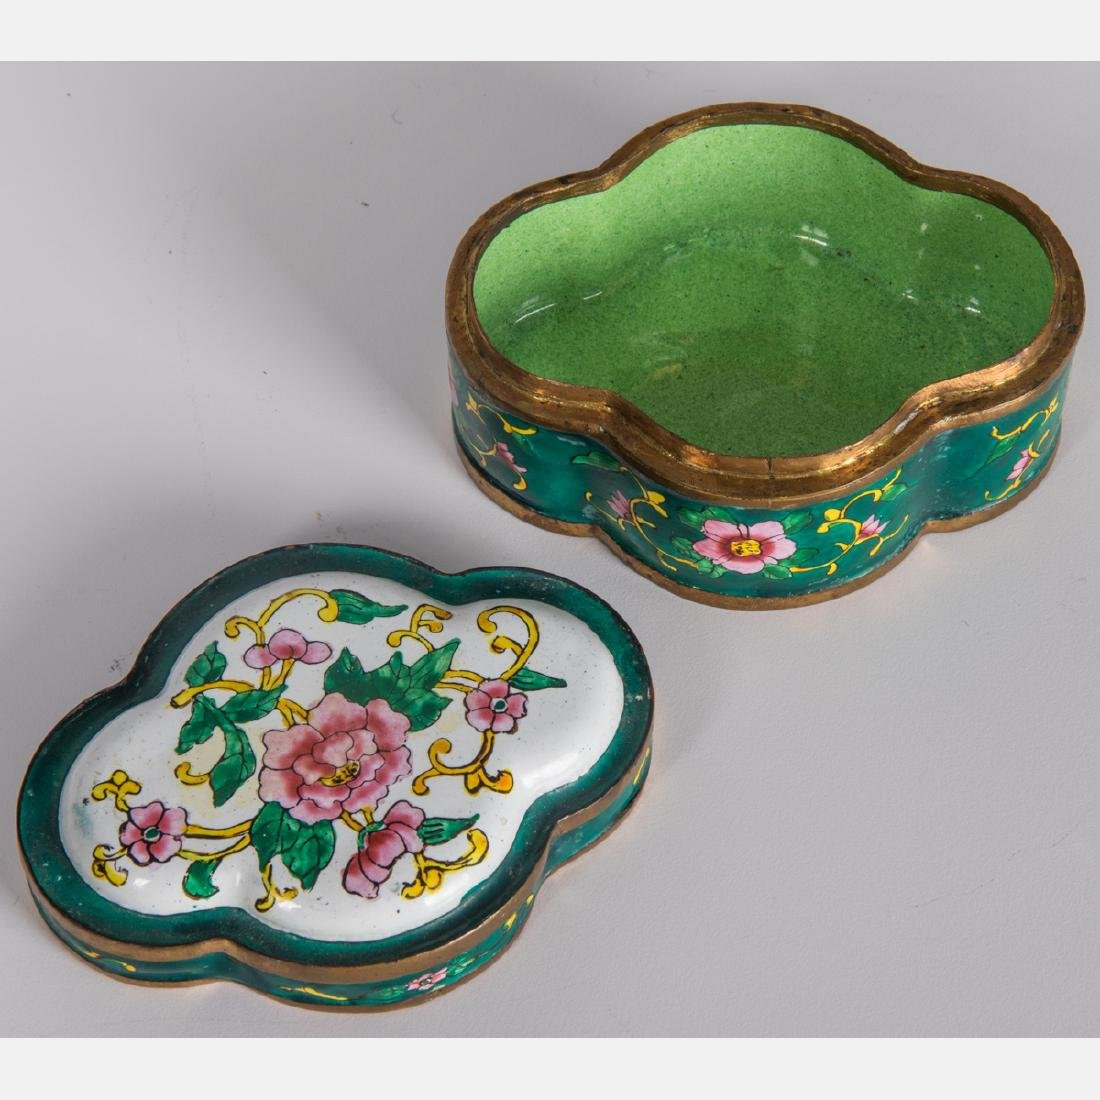 A Group of Eight Chinese Cloisonné and Enameled - 2